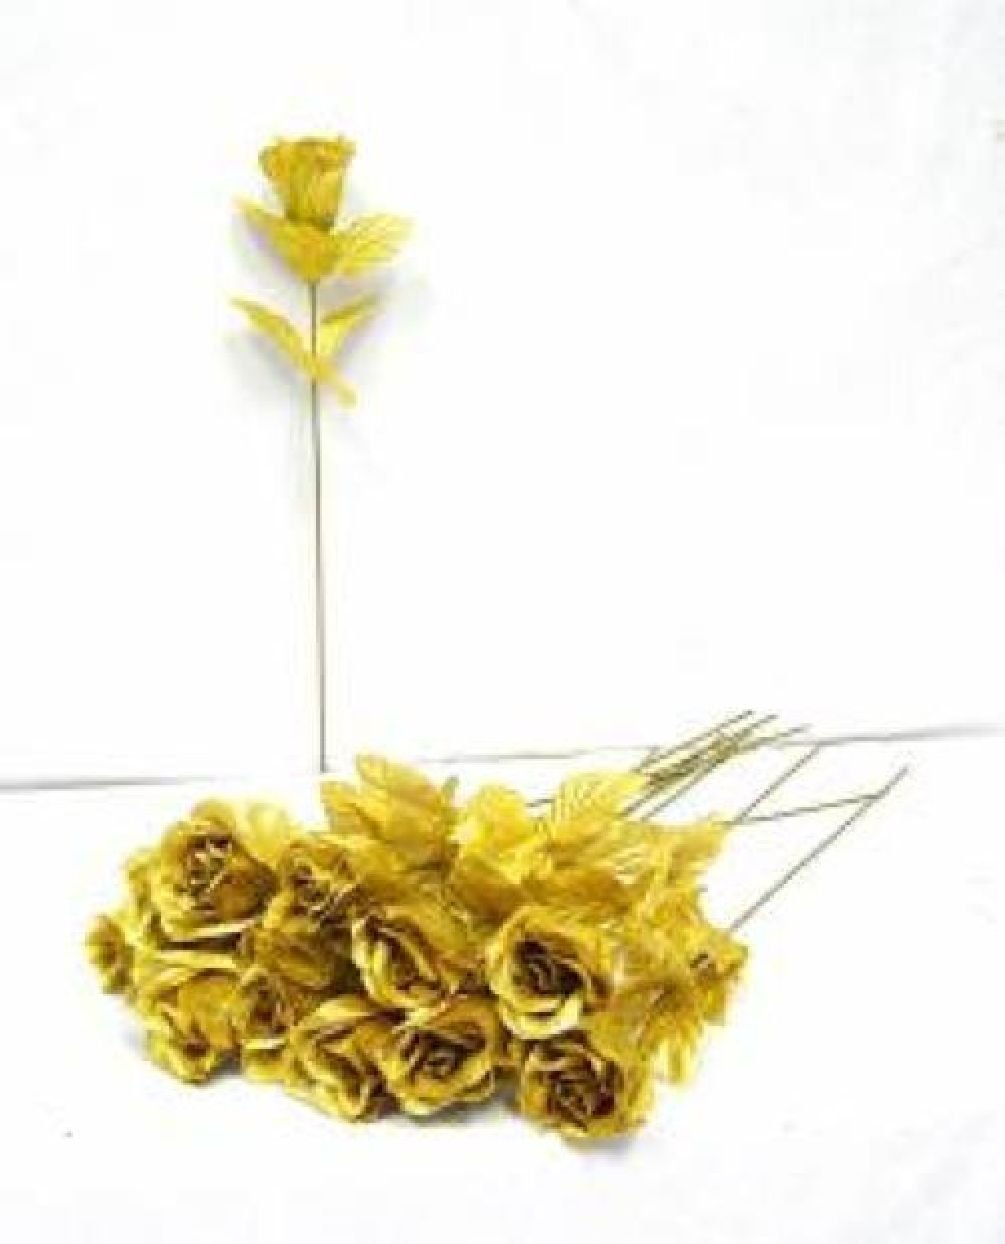 100 Gold Roses Single Long Stem Rose Buds Silk Wedding Bouquet Flowers Party by Dorigan Artificial Art Flowers